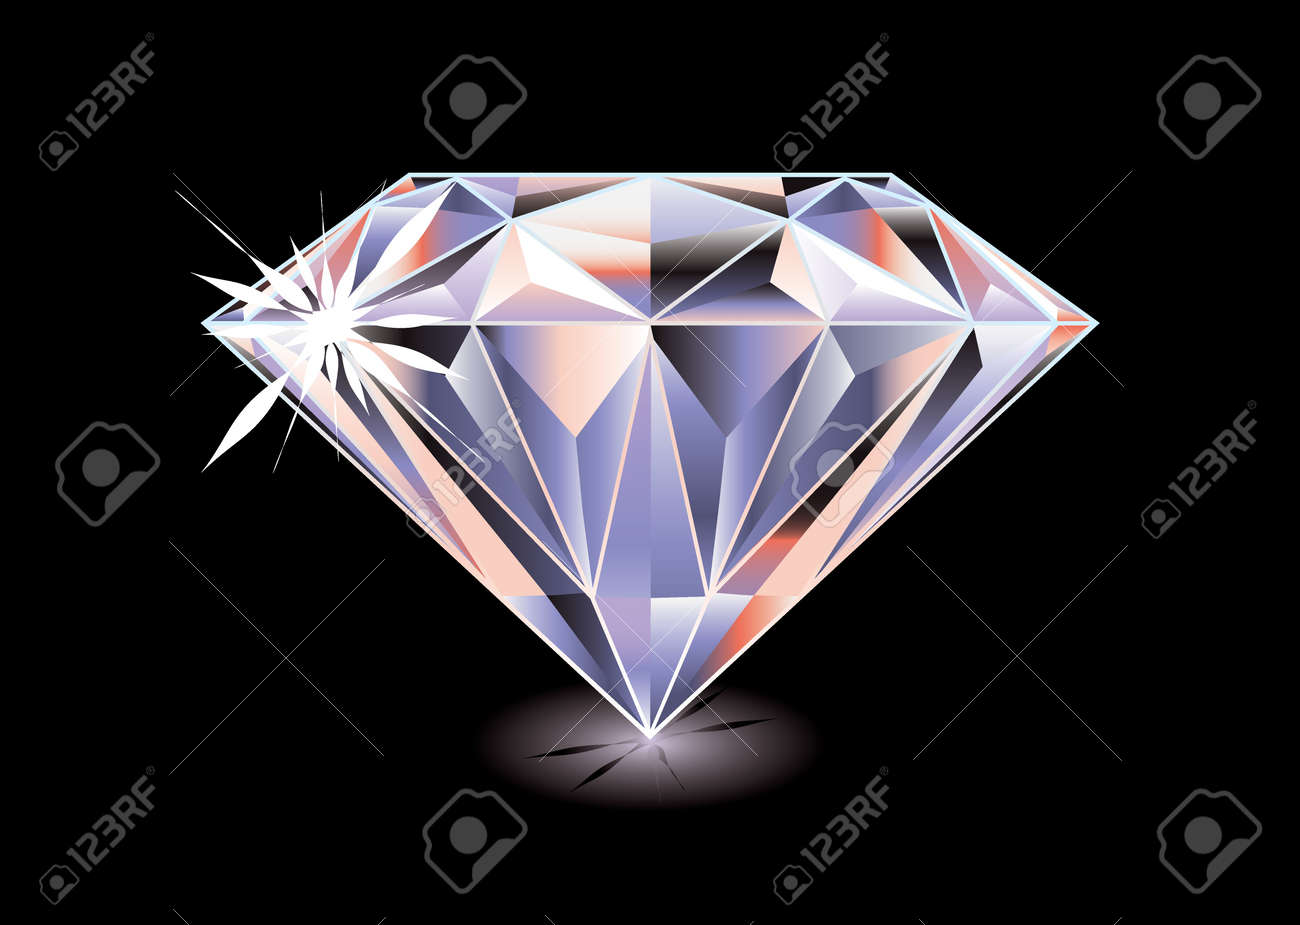 Artistic brightly coloured cut diamond with shadow and reflection on black background - 11995961